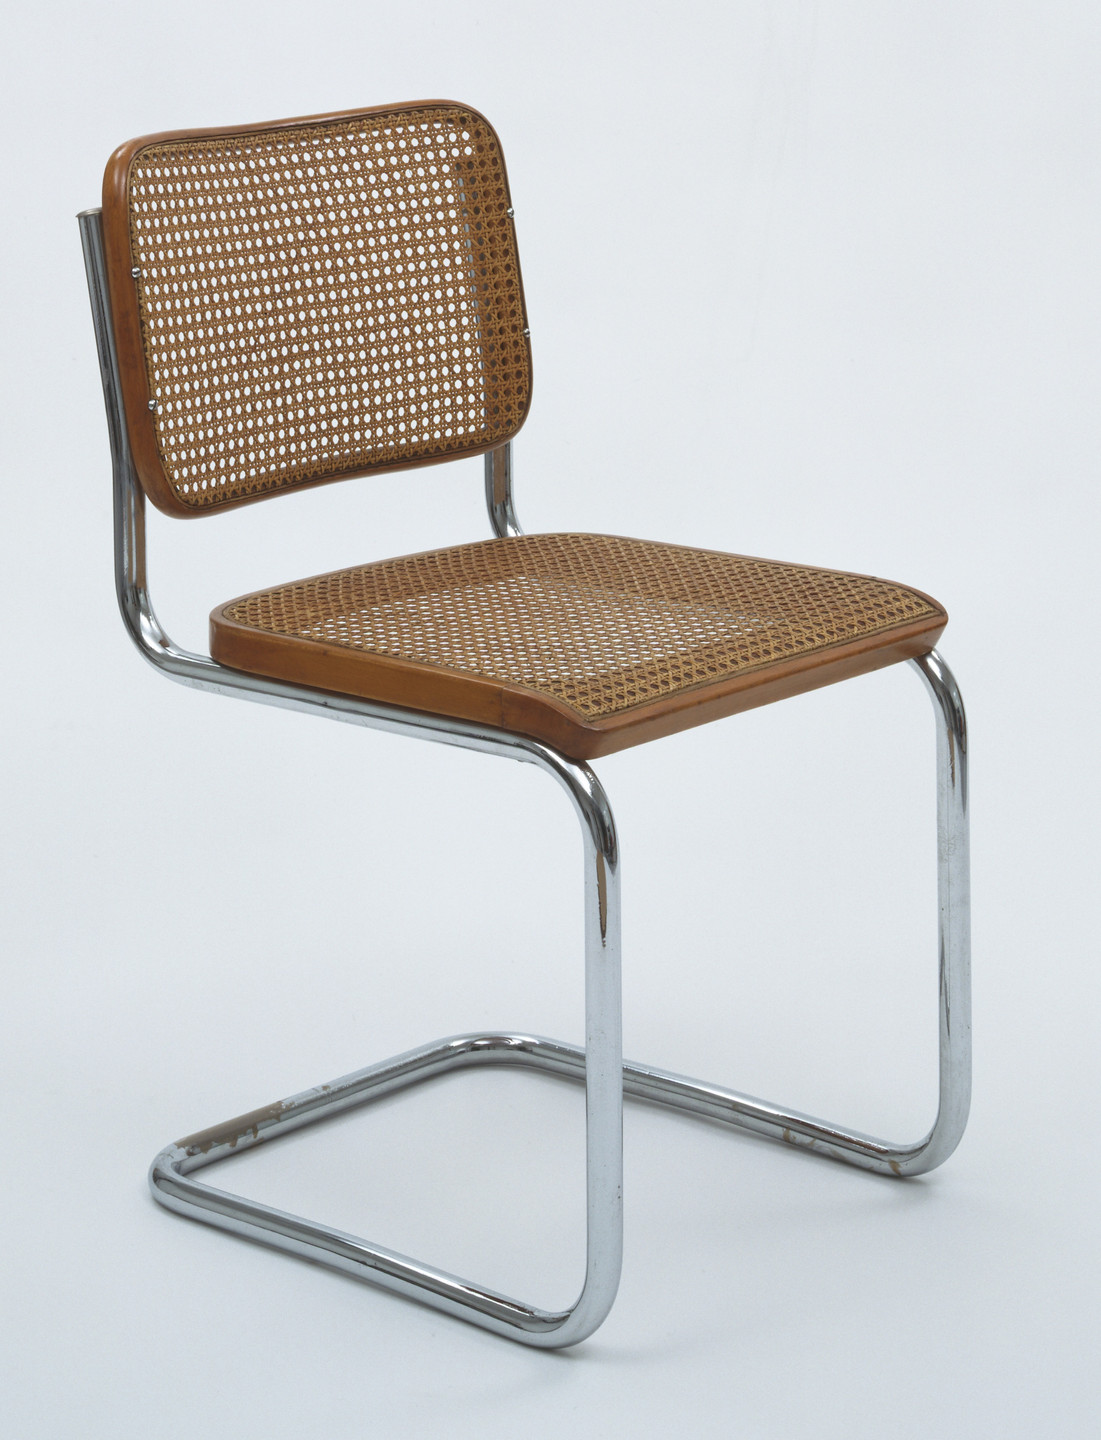 Marcel Breuer. Cesca Side Chair (model B32). 1928